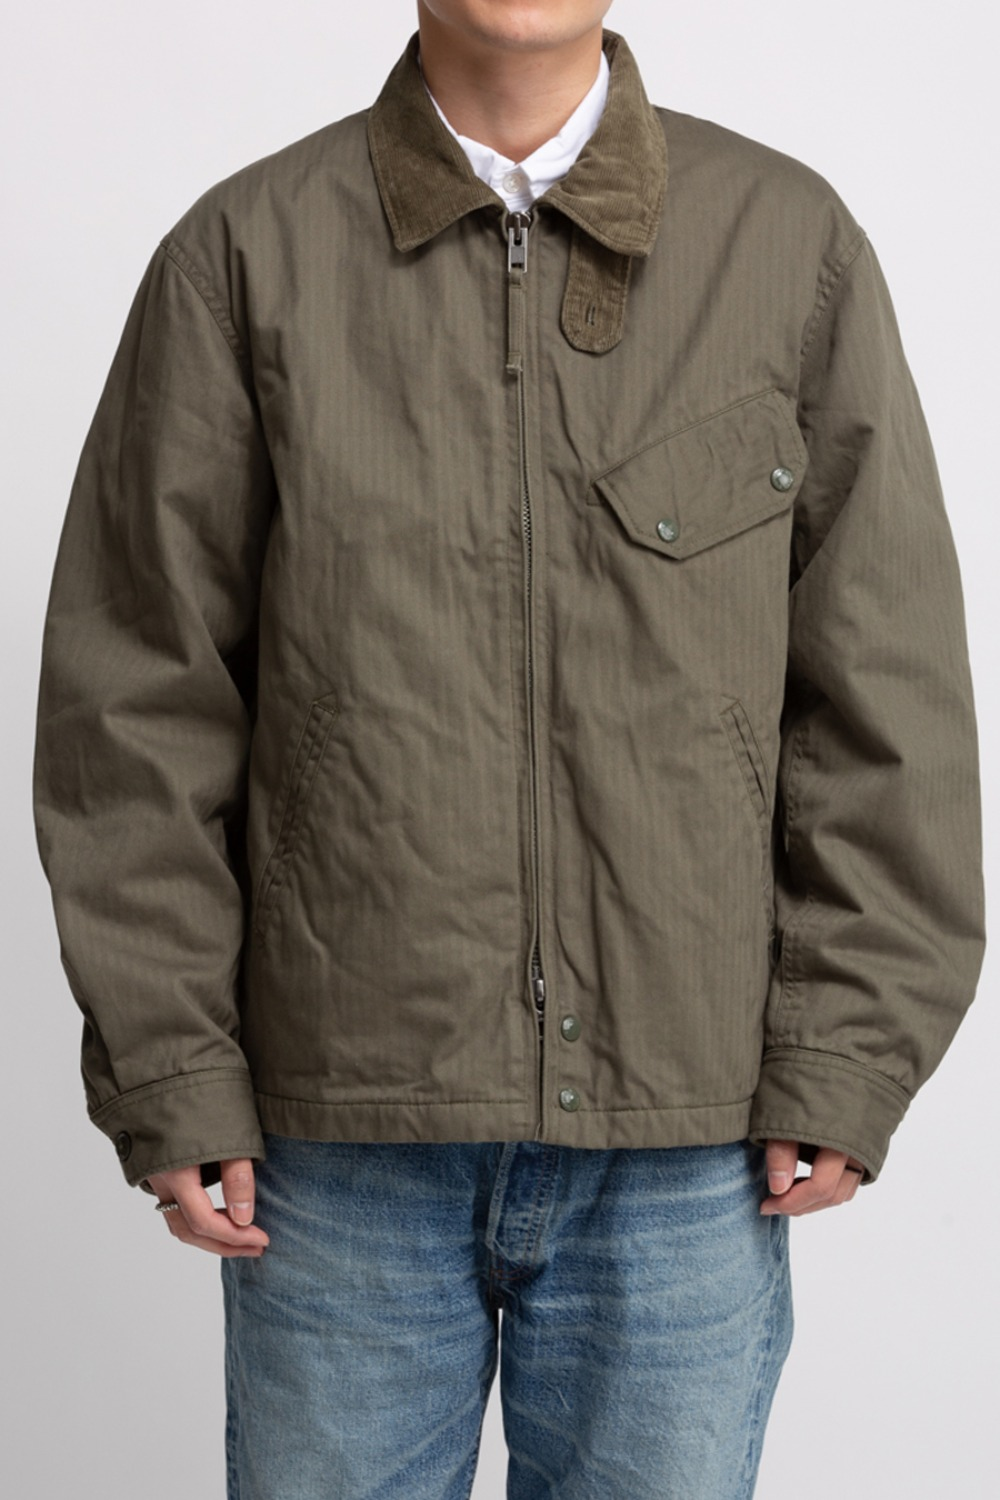 DRIVER JACKET OLIVE COTTON HERRINGBON TWILL